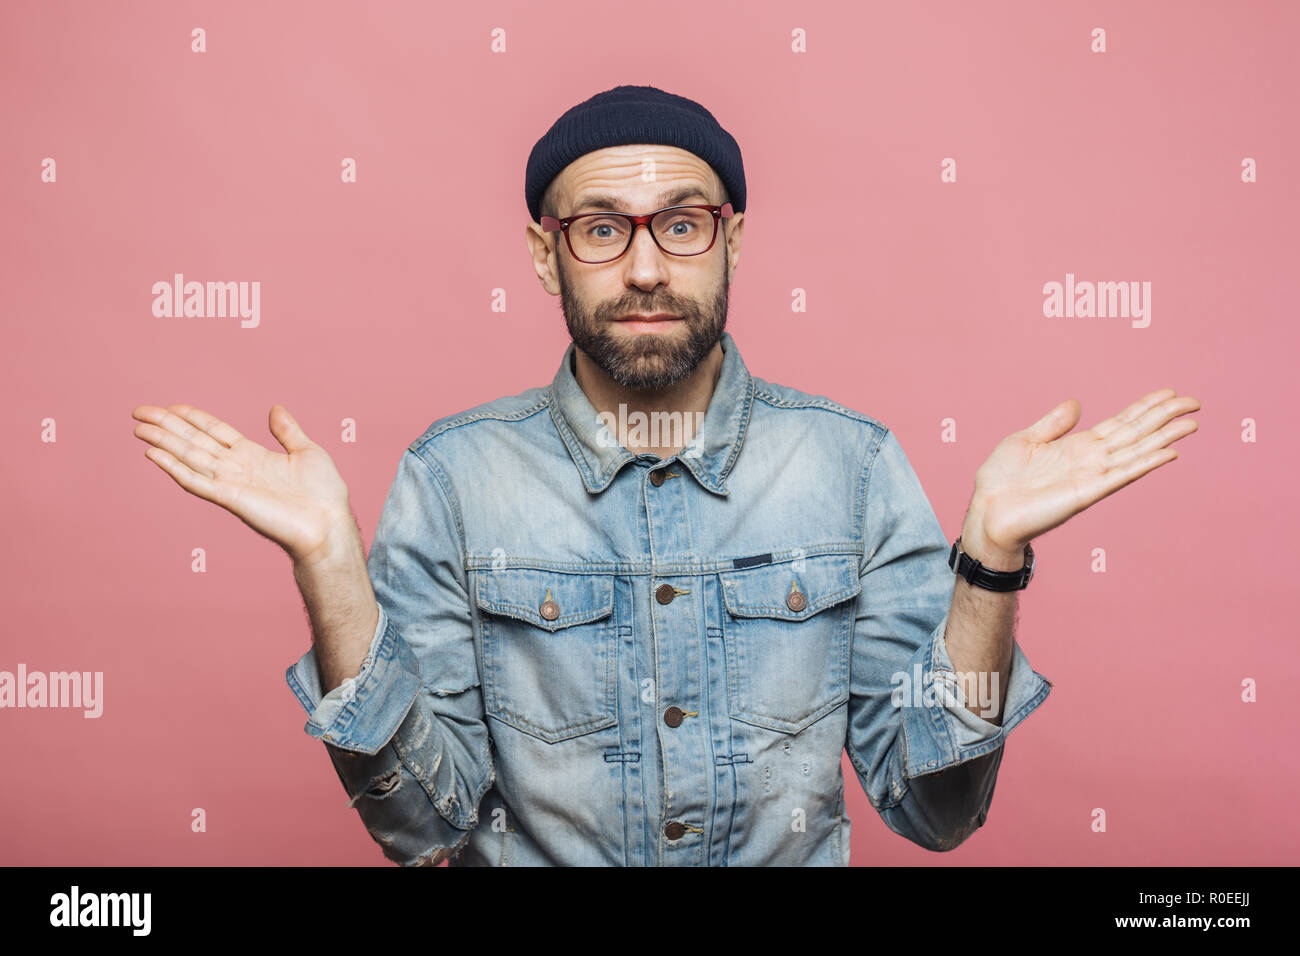 Photo of attractive bearded male wears fashionable clothing, shrugs shoulders in bewilderment, makes serious decision, isolated over pink background.  - Stock Image